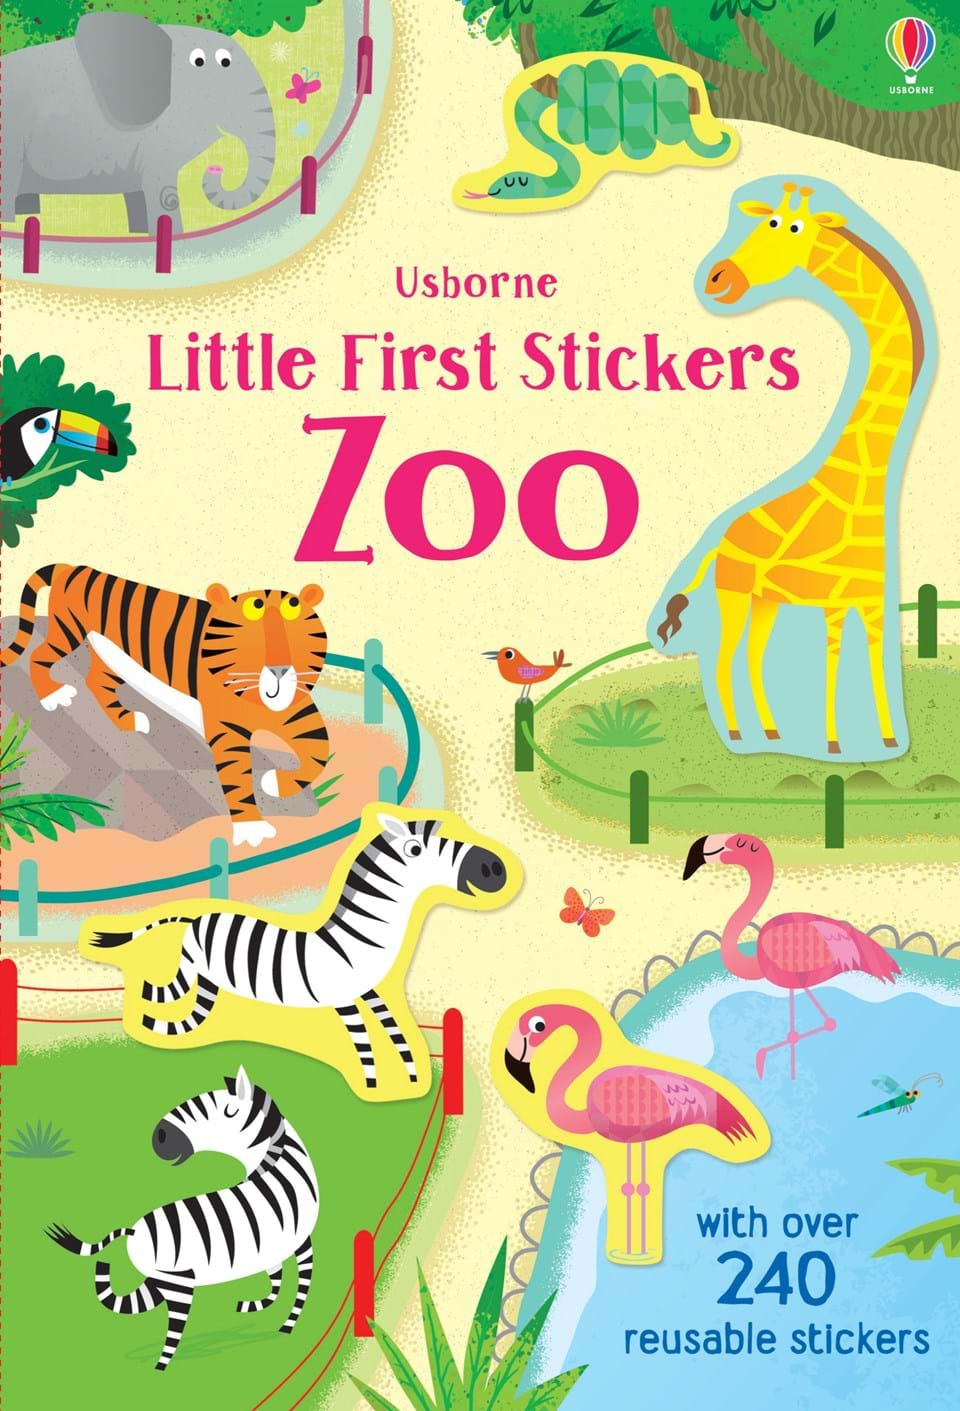 Paperback - Little First Stickers Zoo